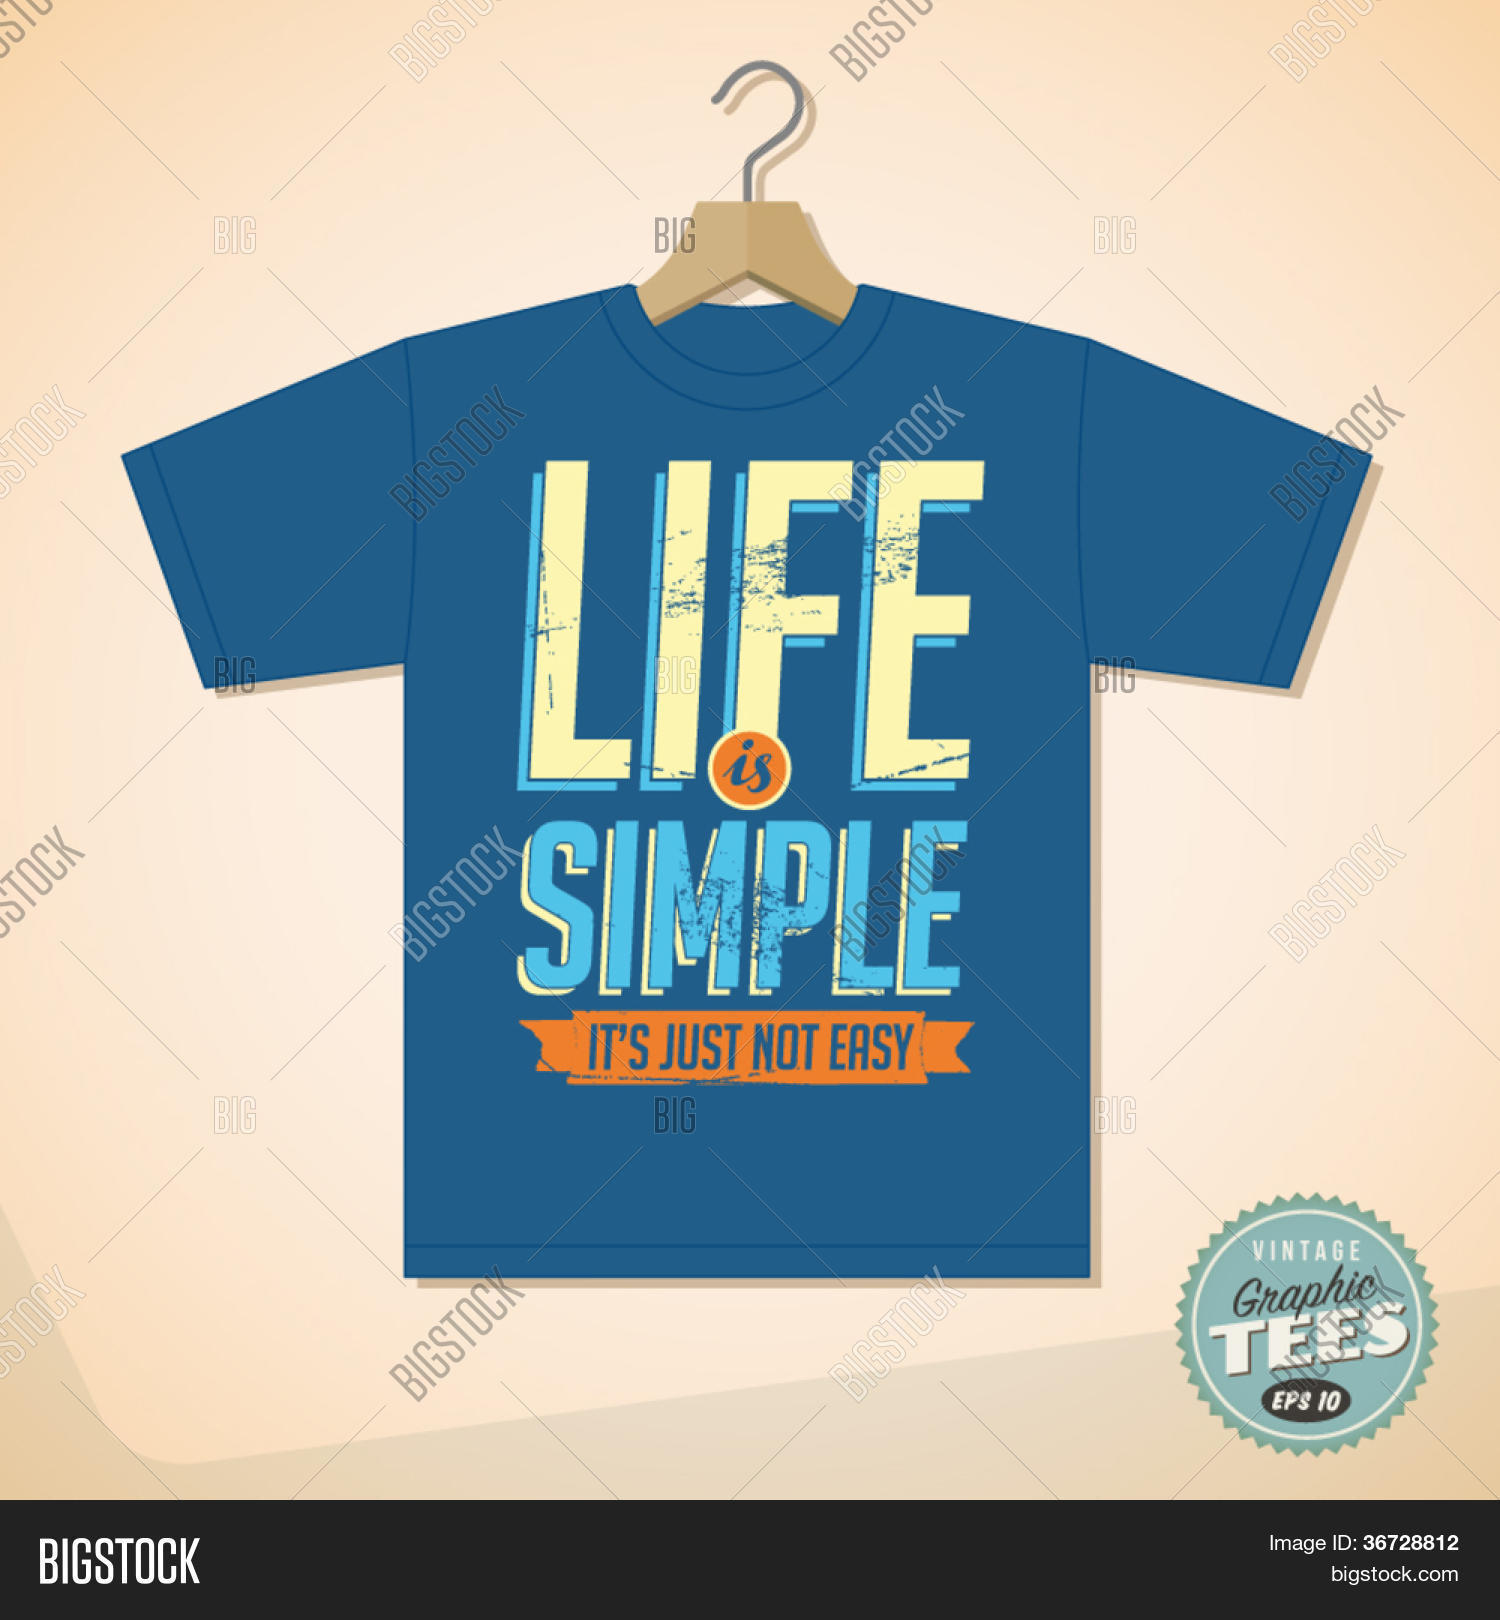 Design t shirt easy - Vintage Graphic T Shirt Design Life Is Simple It S Not Just Easy